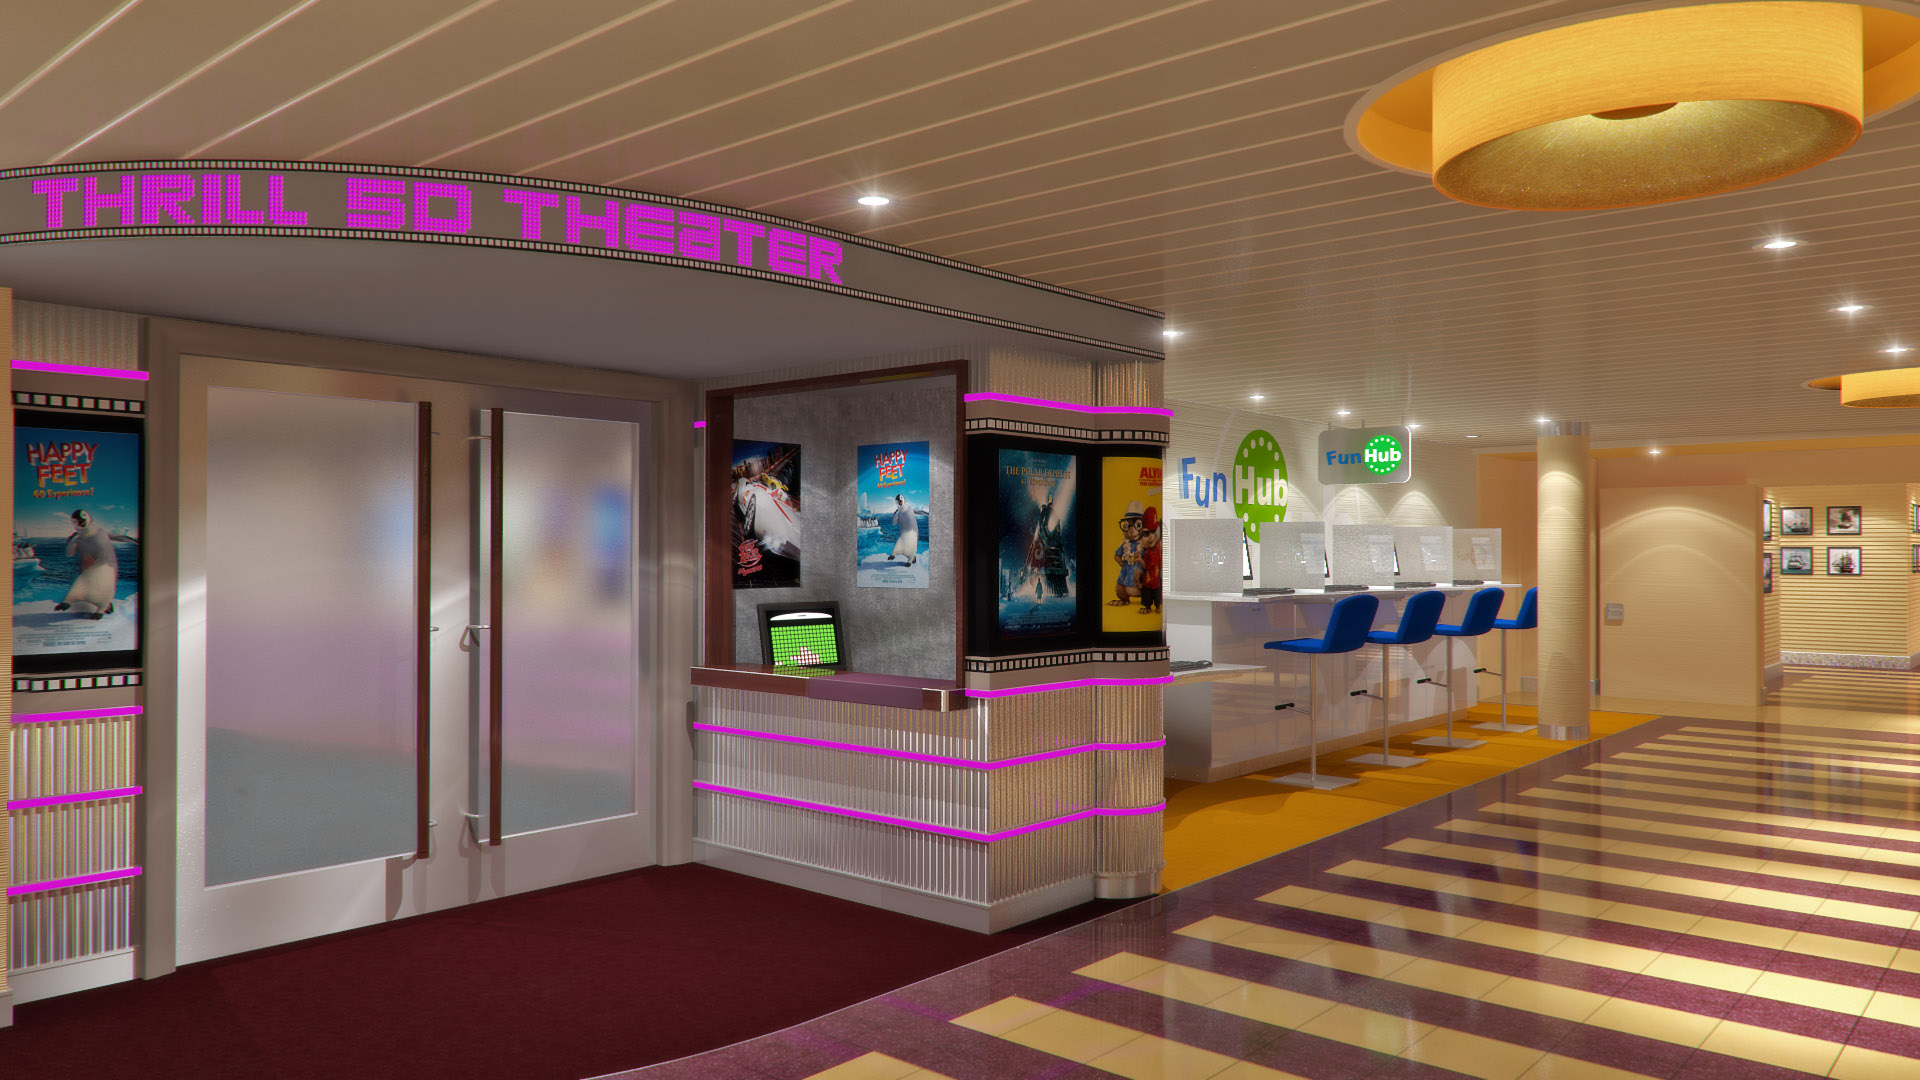 Carnival Kicks Off Facebook Contest Tied To New Thrill 5D Theater Debuting On Breeze